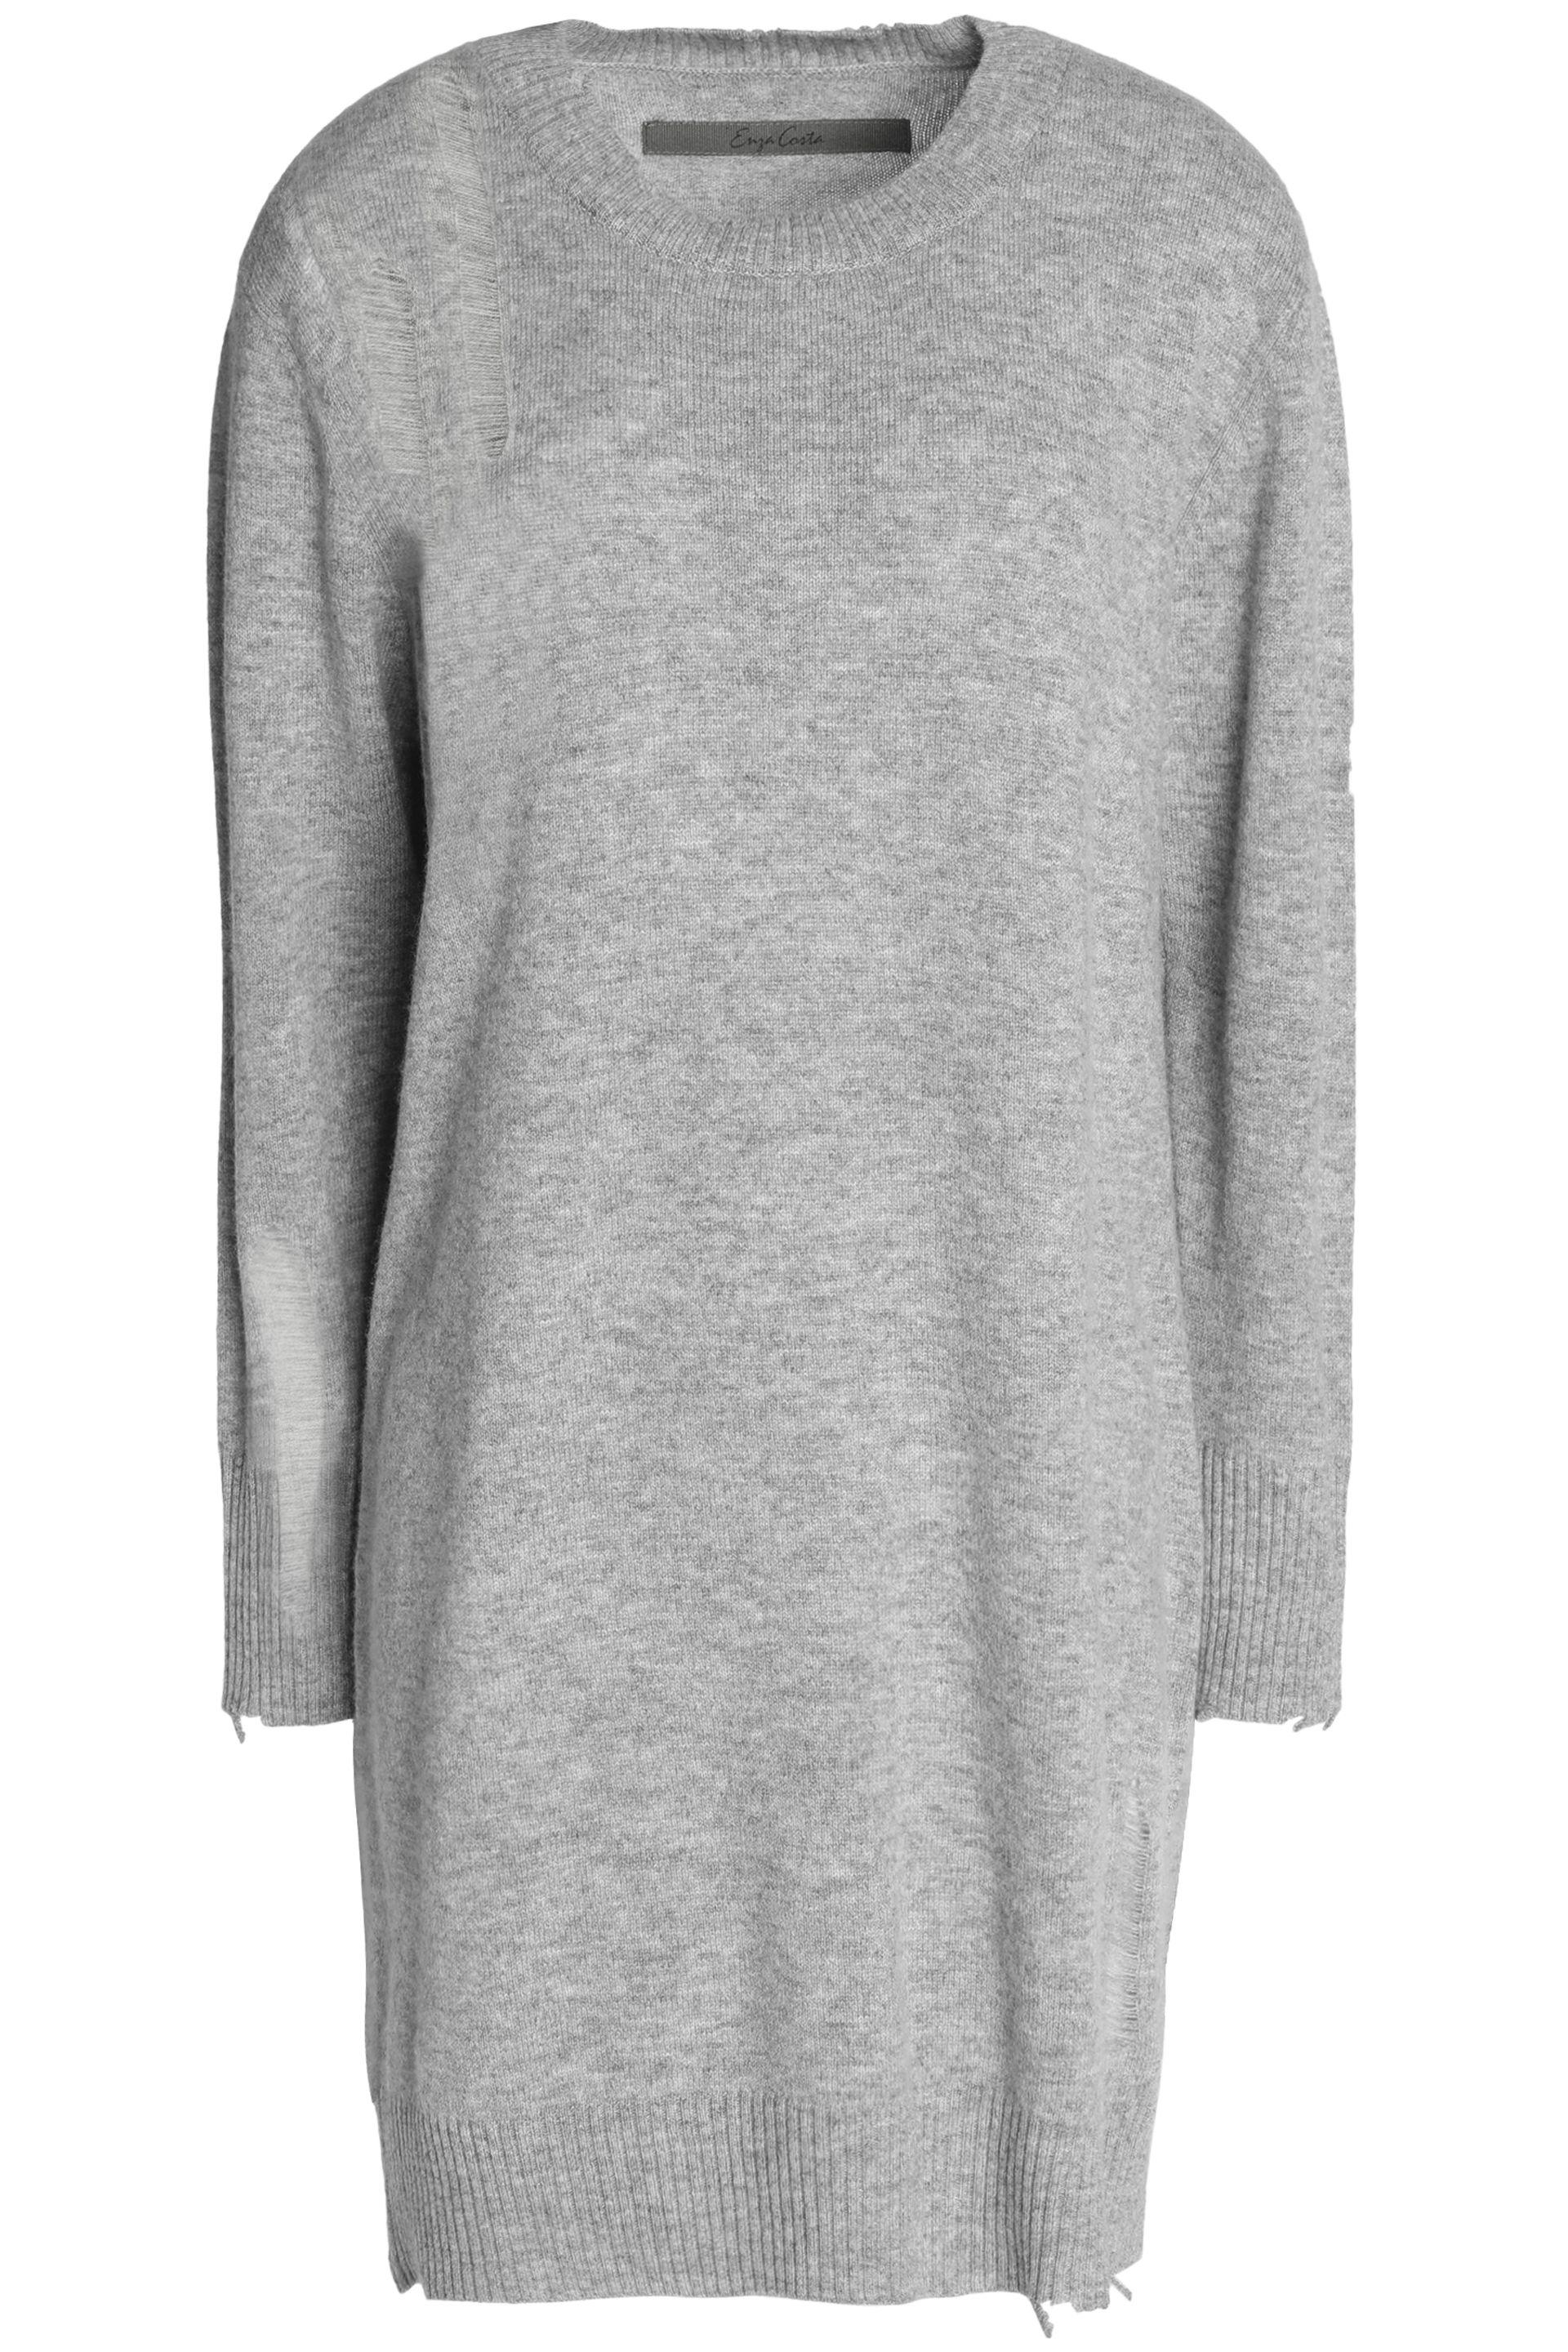 With Credit Card For Sale Enza Costa Woman Distressed Mélange Wool And Cashmere-blend Sweater Dark Gray Size M Enza Costa Quality Free Shipping Outlet Supply DFwYP